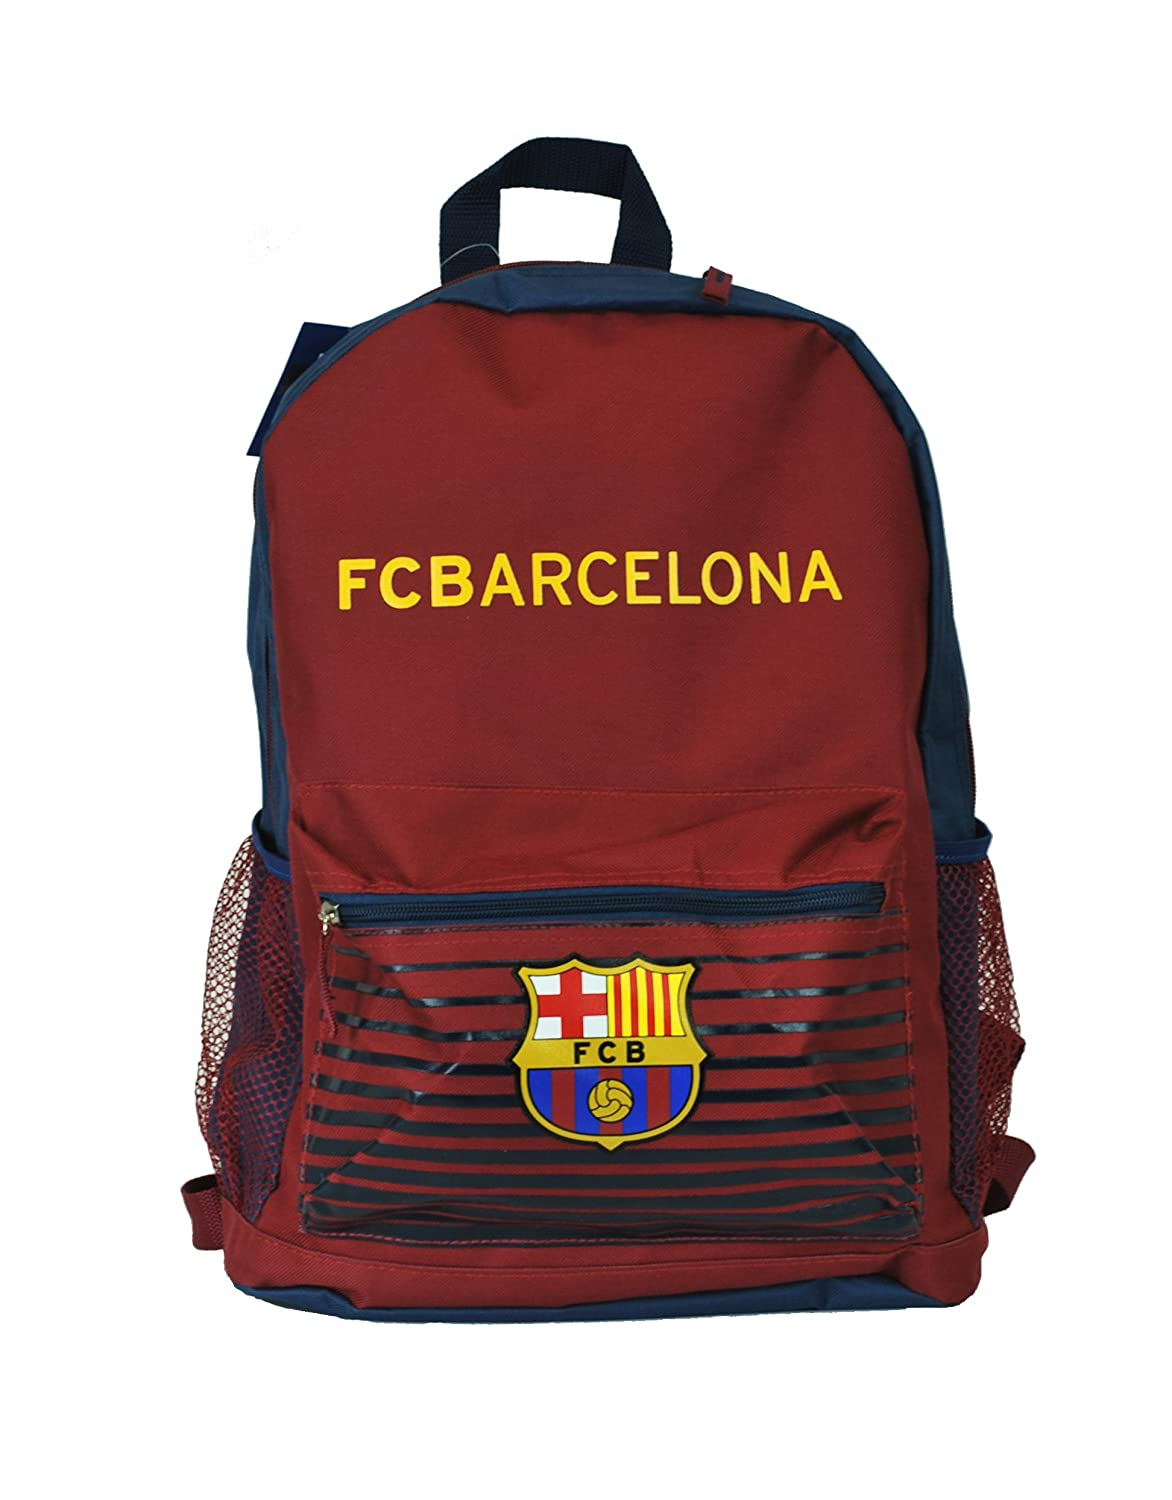 Amazon.com : FC Barcelona Messi Soccer Backpack Schoolbag Adjustable Straps (Manchester United) : Sports & Outdoors